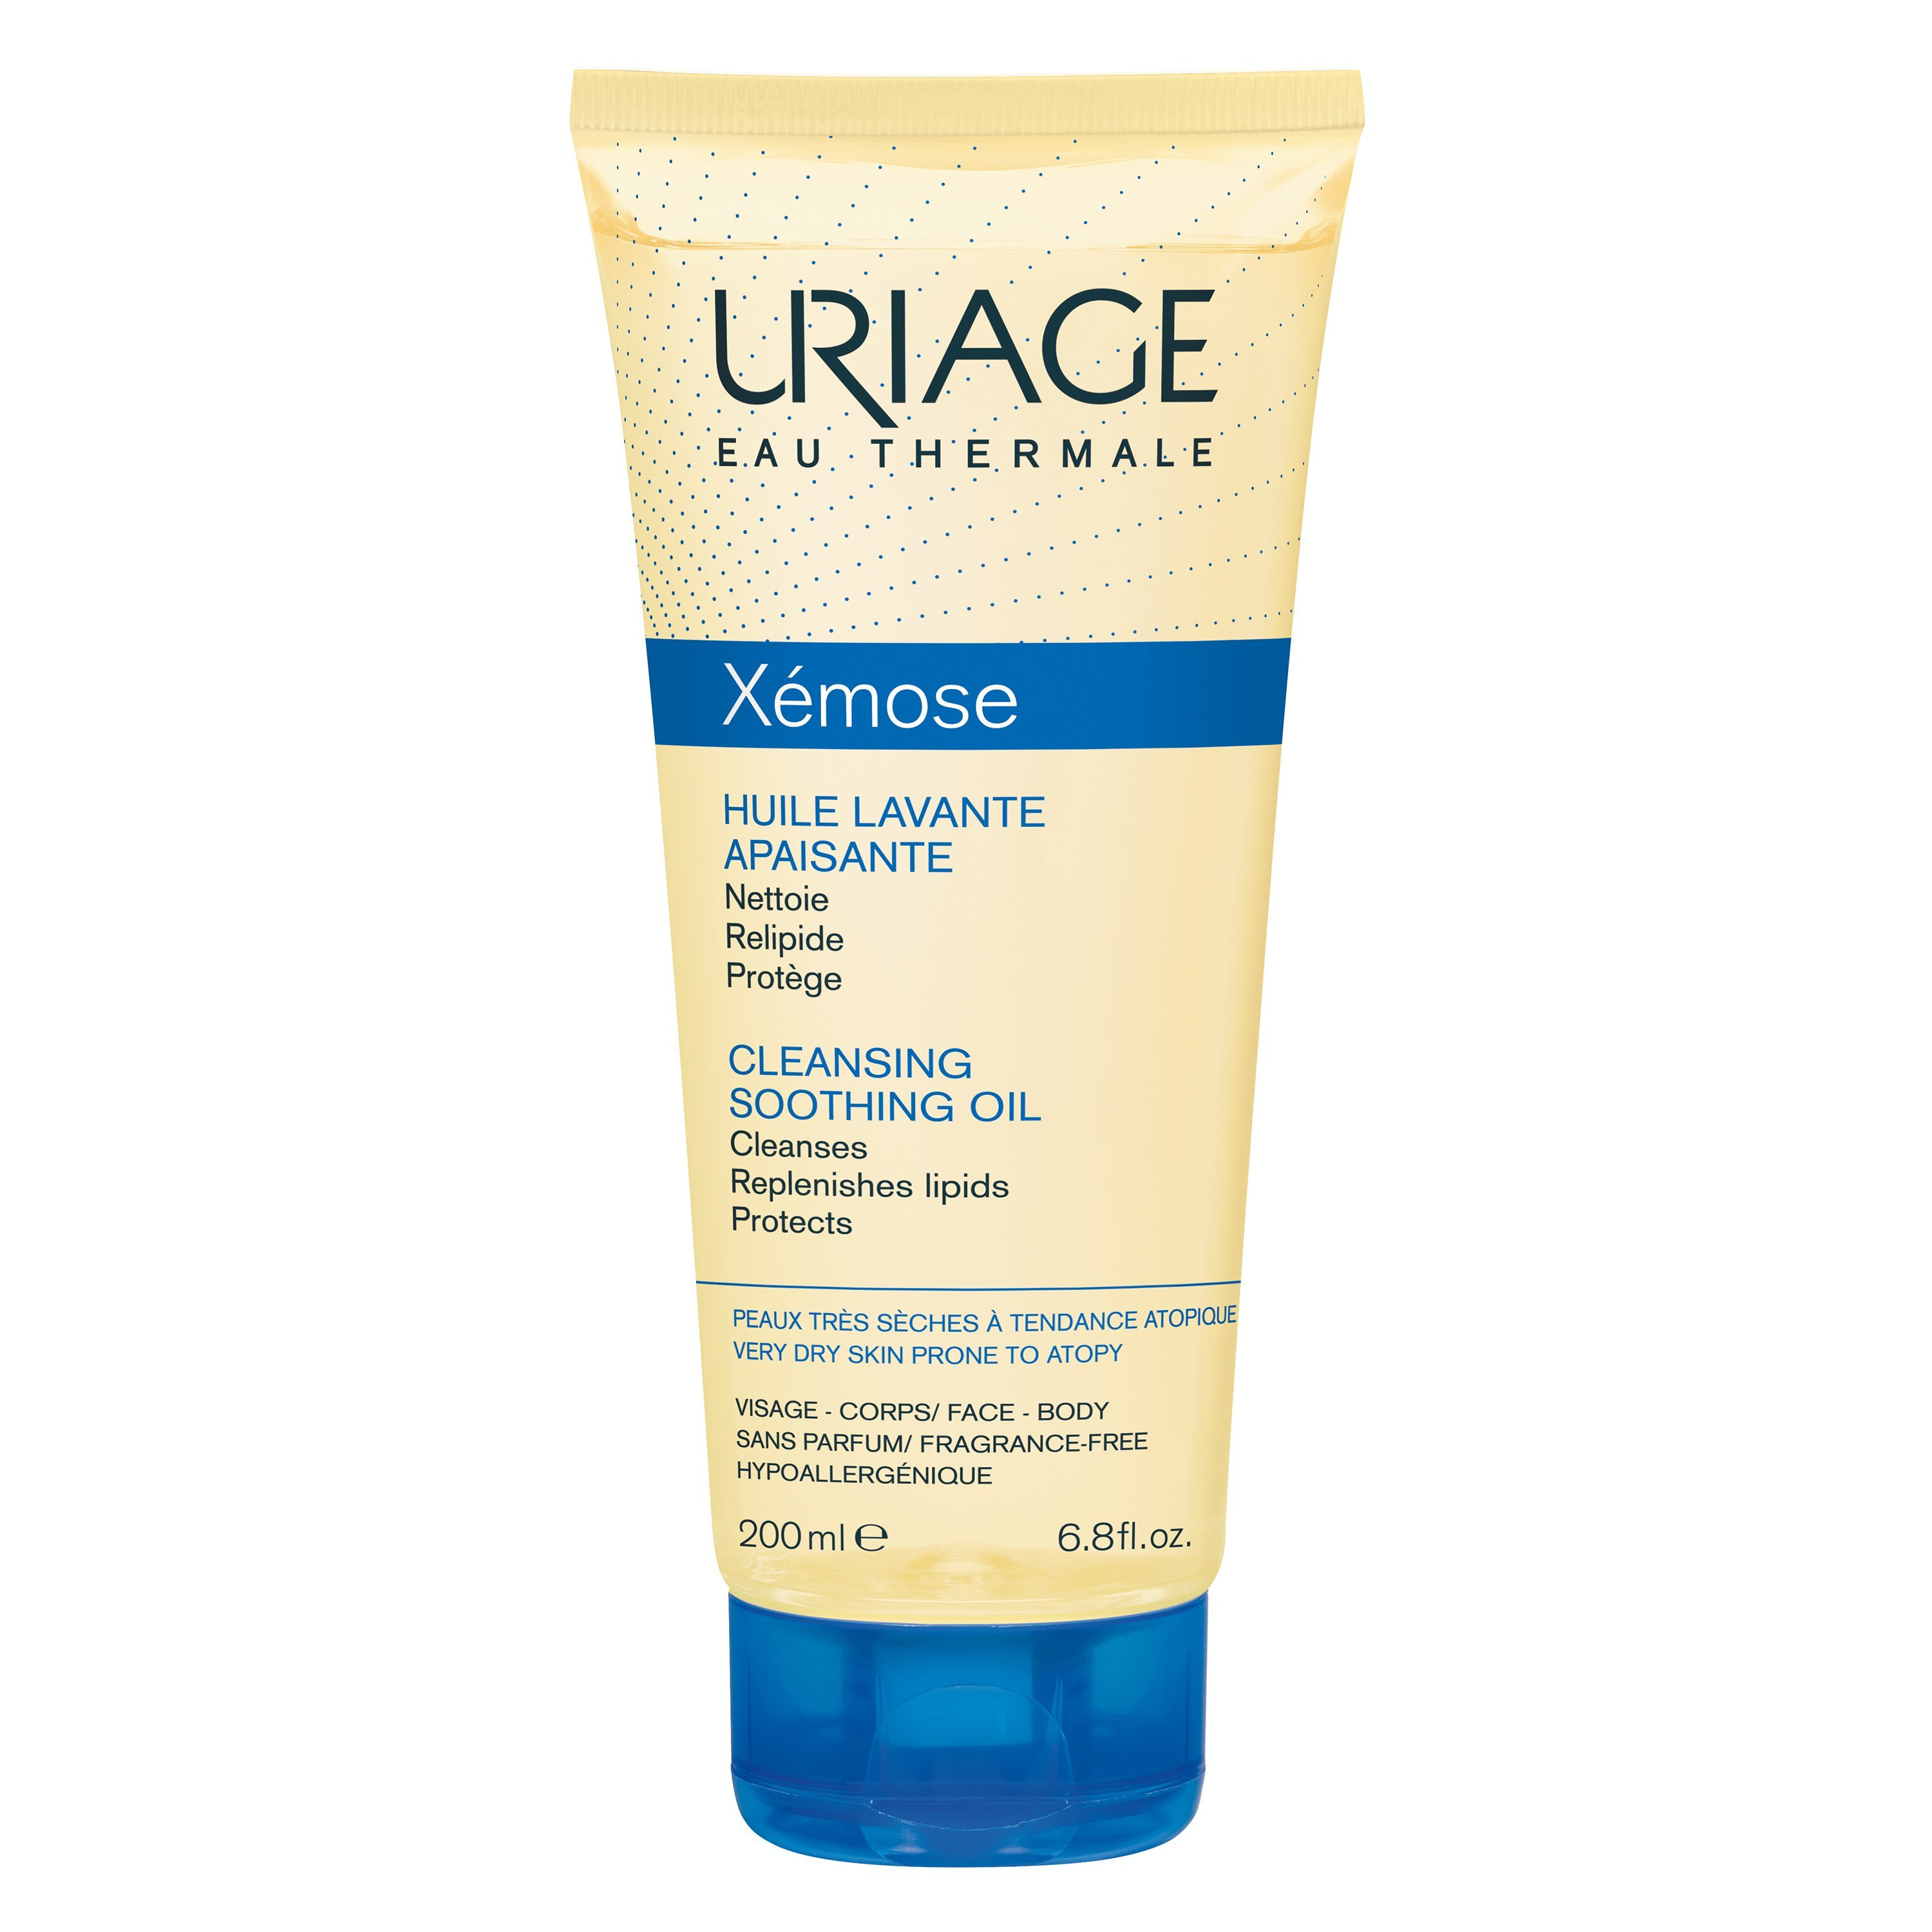 Uriage Eau Thermale Xemose Cleansing Soothing Oil Λάδι Καθαρισμού που Προστατεύει Από την Ξηρότητα 200ml